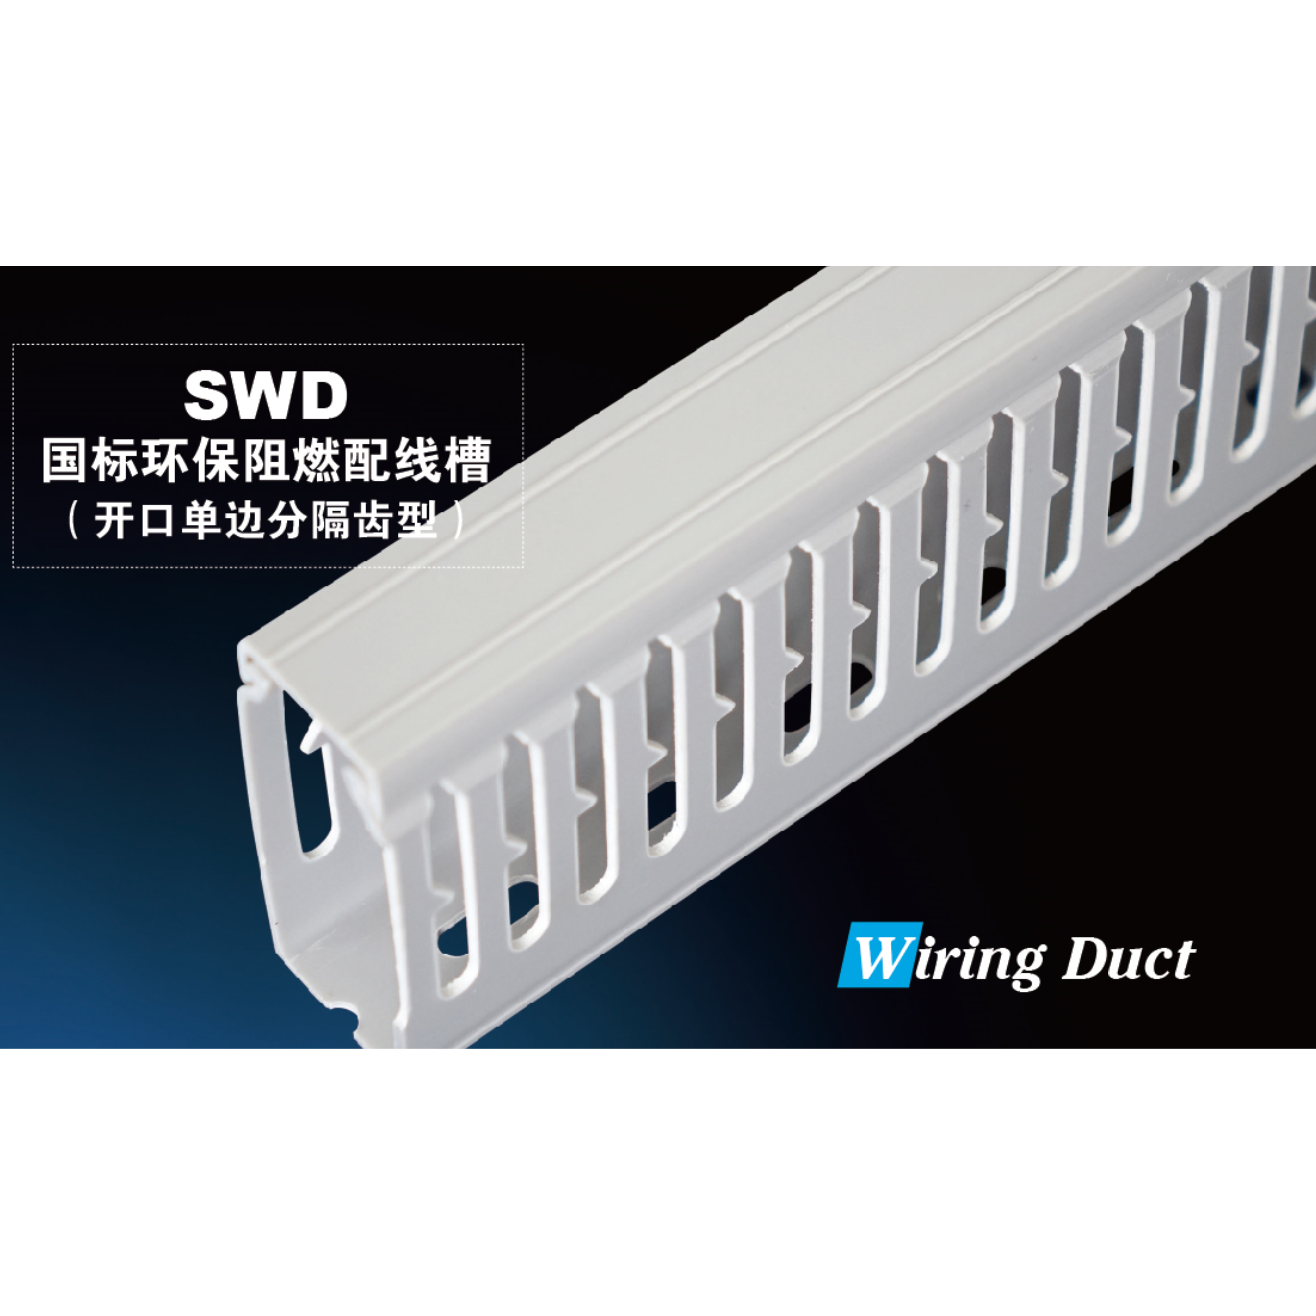 Wiring duct SWD